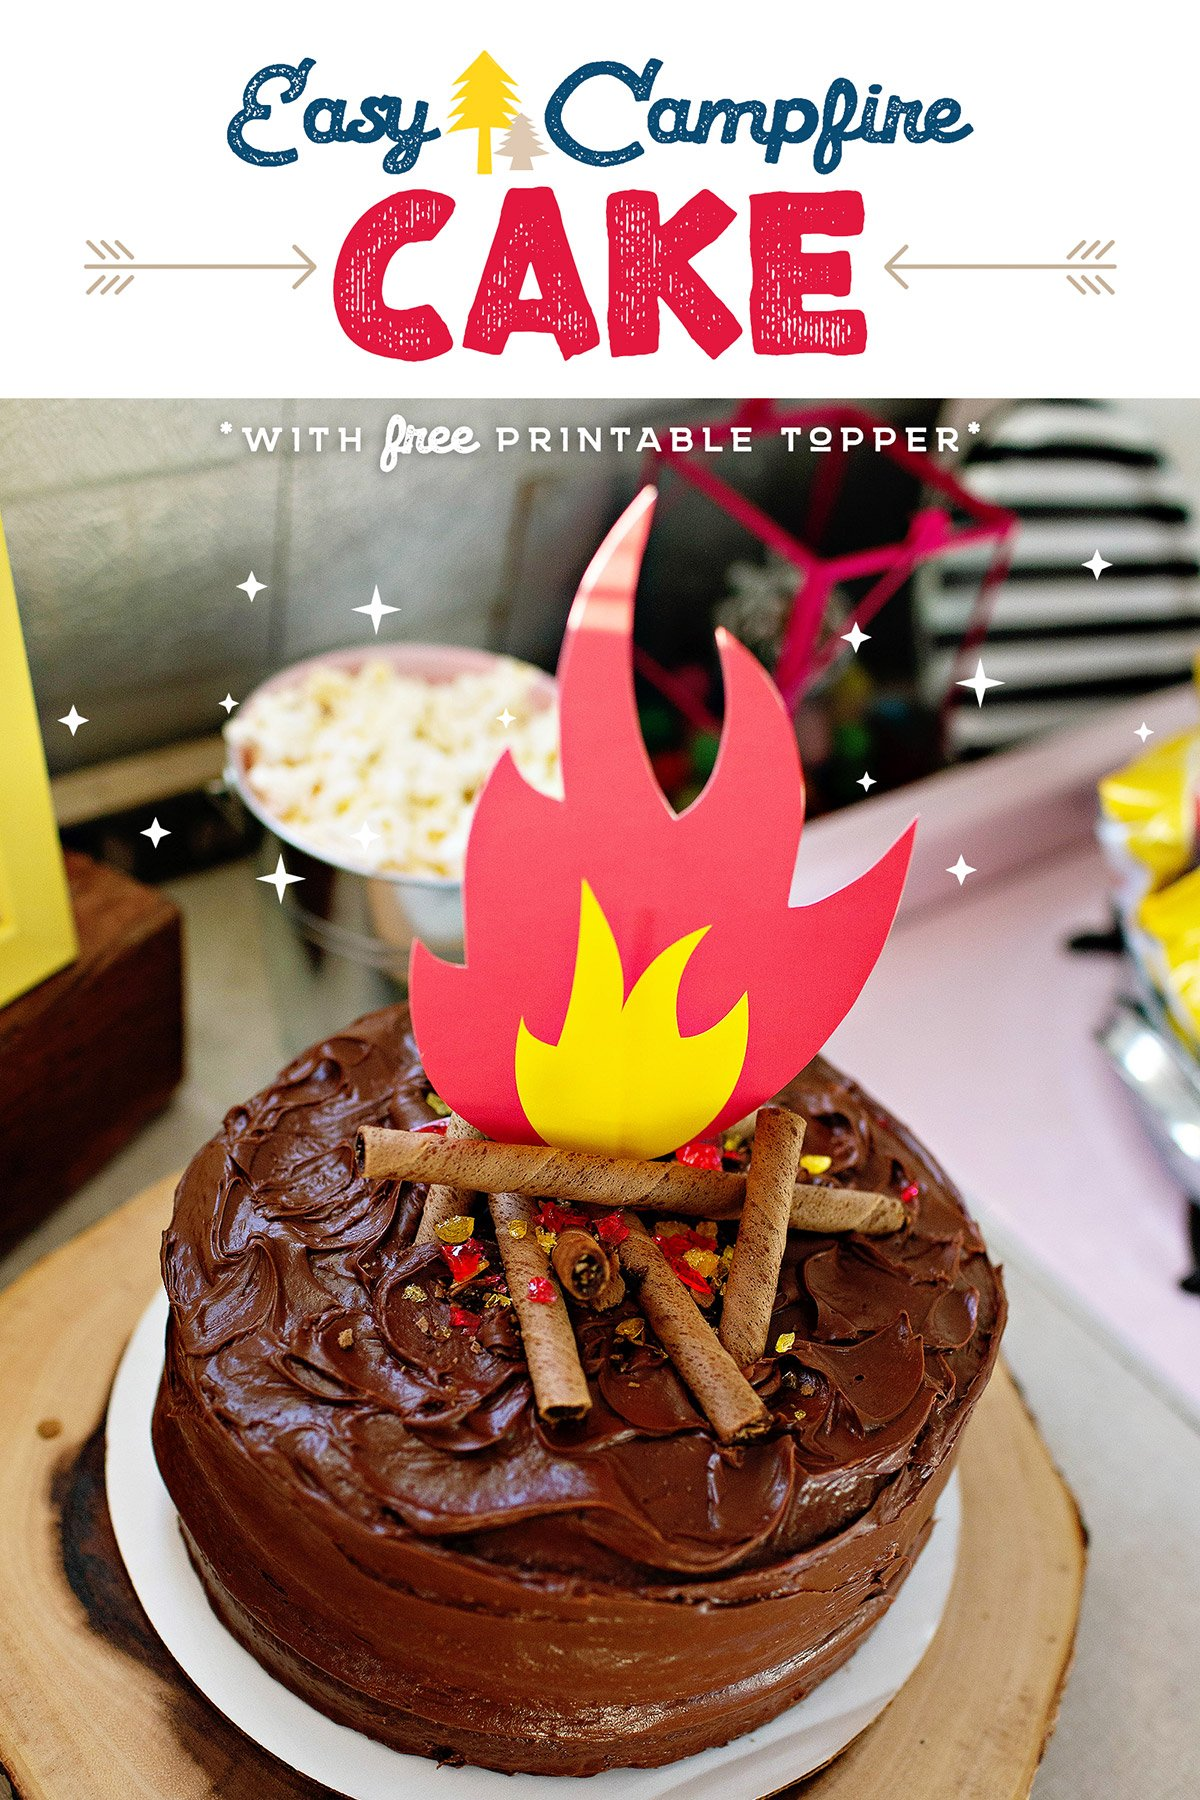 Phenomenal Easy Campfire Cake Printable Fire Topper Hostess With The Funny Birthday Cards Online Alyptdamsfinfo